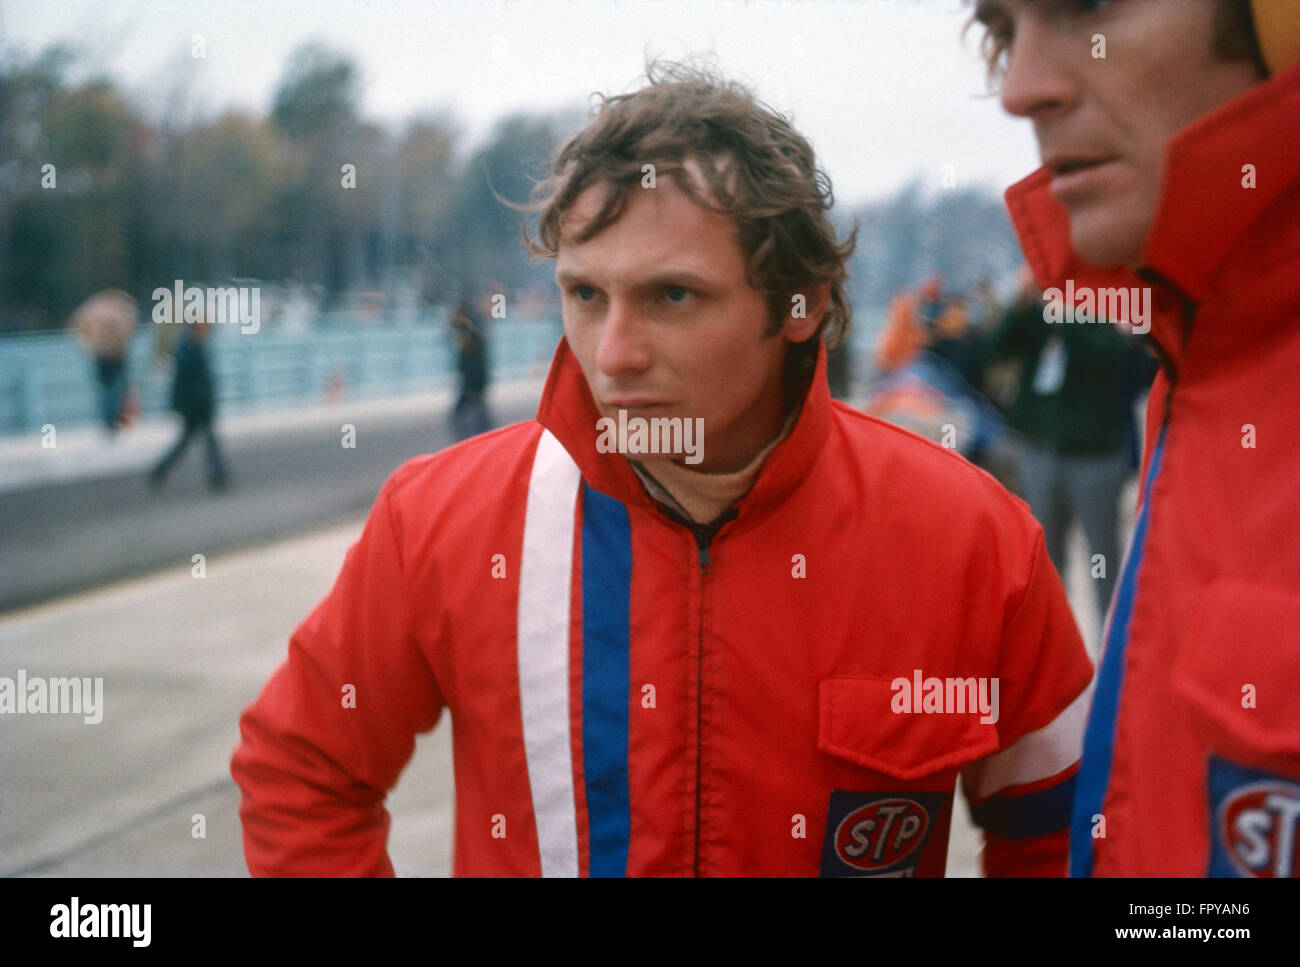 United States Grand Prix >> Niki Lauda. 1972 United States Grand Prix Stock Photo: 100175410 - Alamy